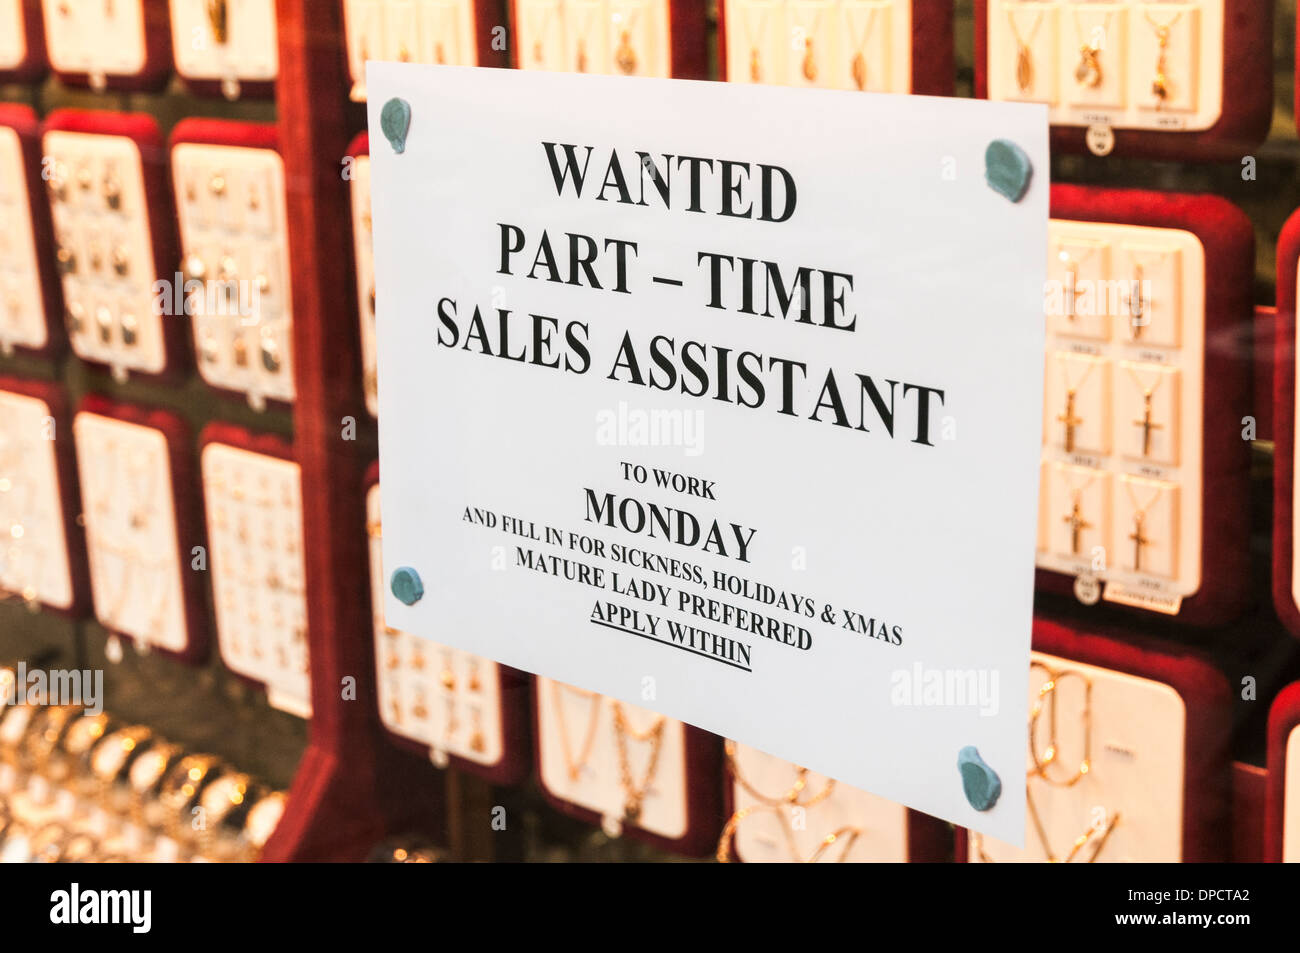 Job advertisement in a jewellers shop window advertising for a part time sales assistant - Stock Image